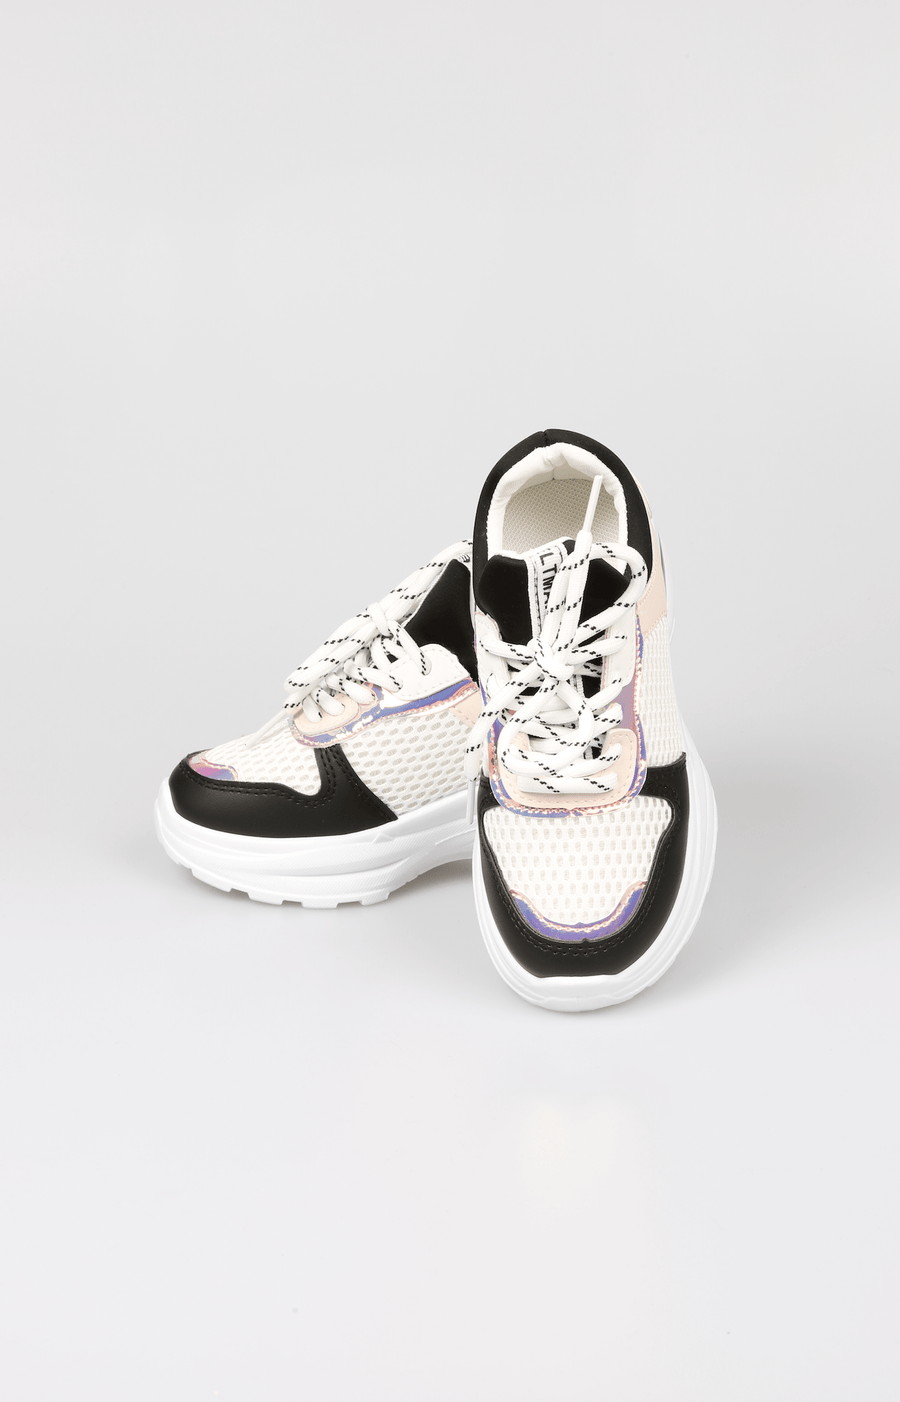 Sana Mesh Holographic Detail Chunky Sole Trainers Black/White